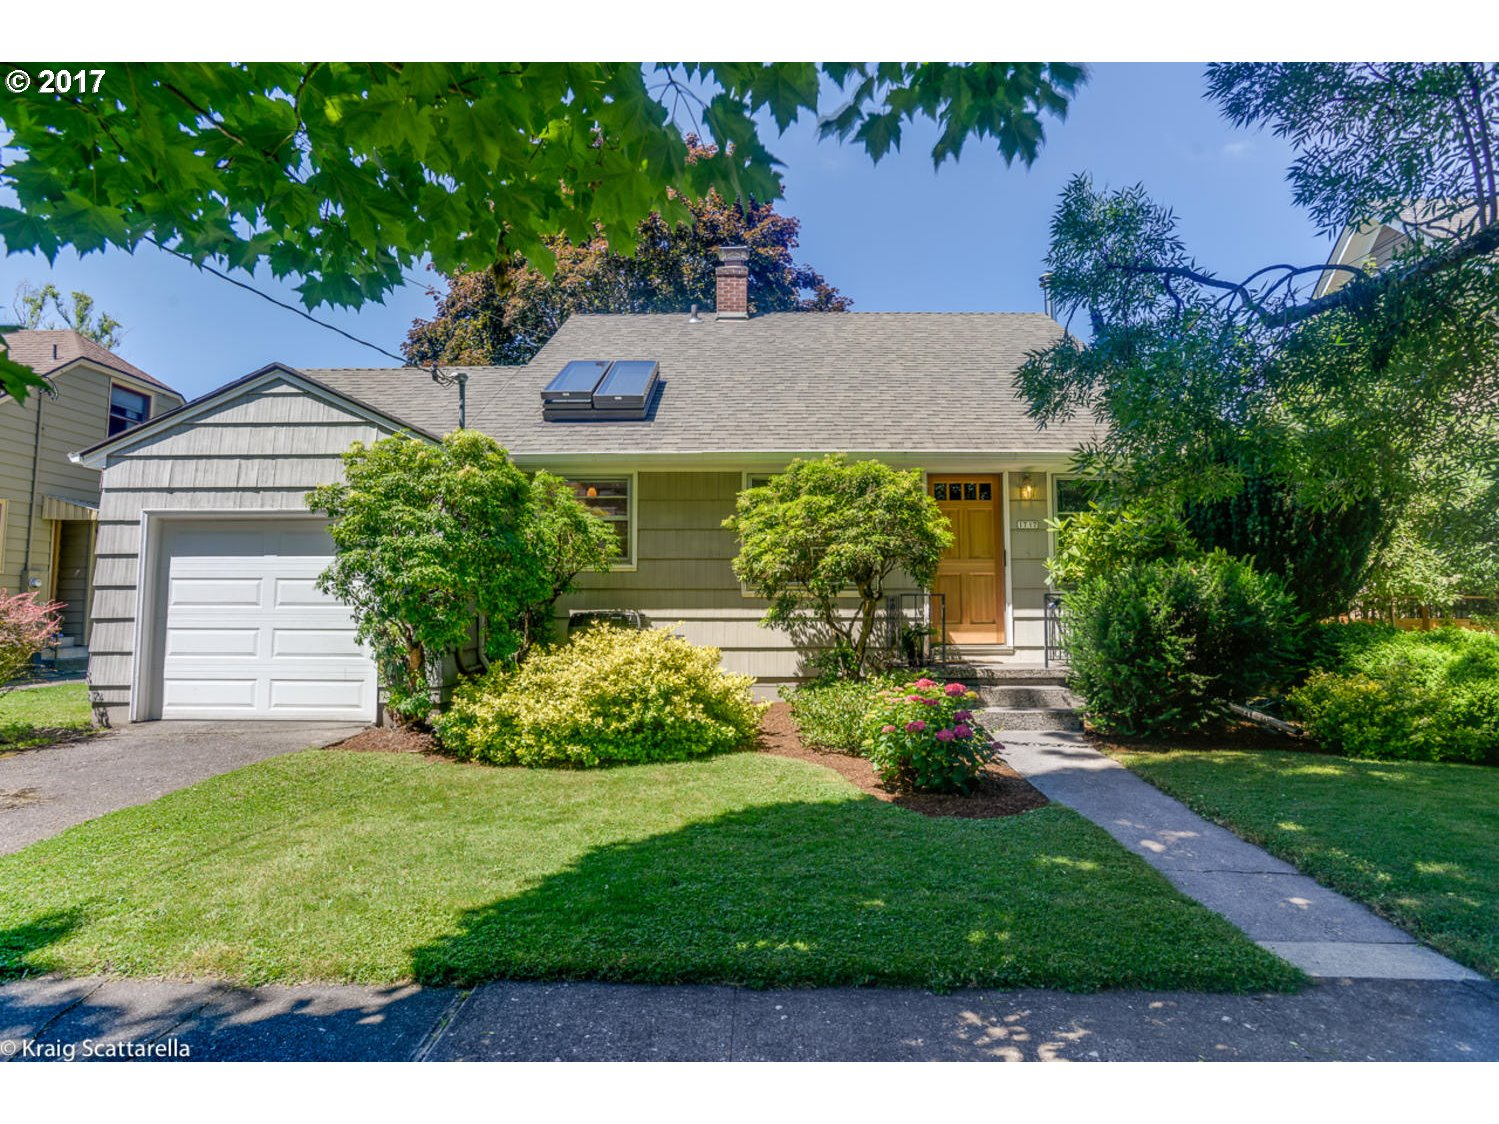 1717 SE 43RD AVE Portland Home Listings - The Rob Levy Team Real Estate